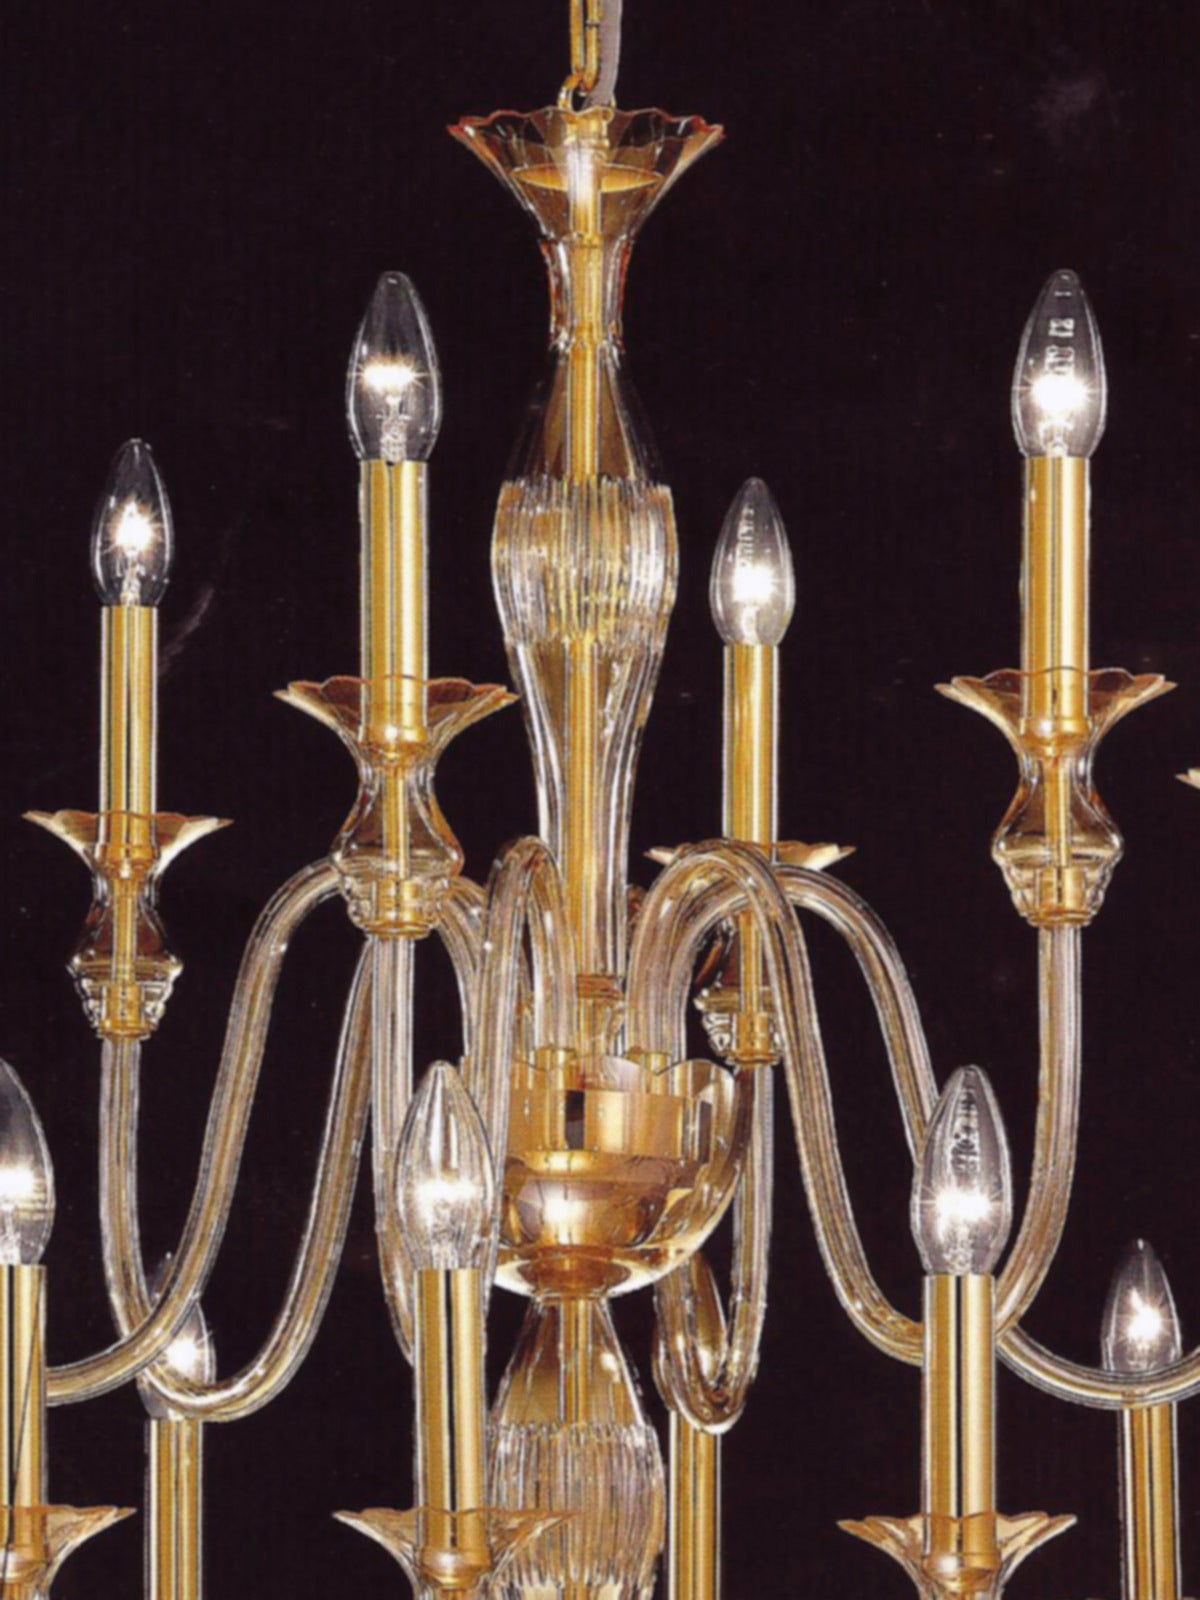 20th Century 2 Mid-Century Modern Neoclassical Murano /Venetian Glass Double Tier Chandeliers For Sale